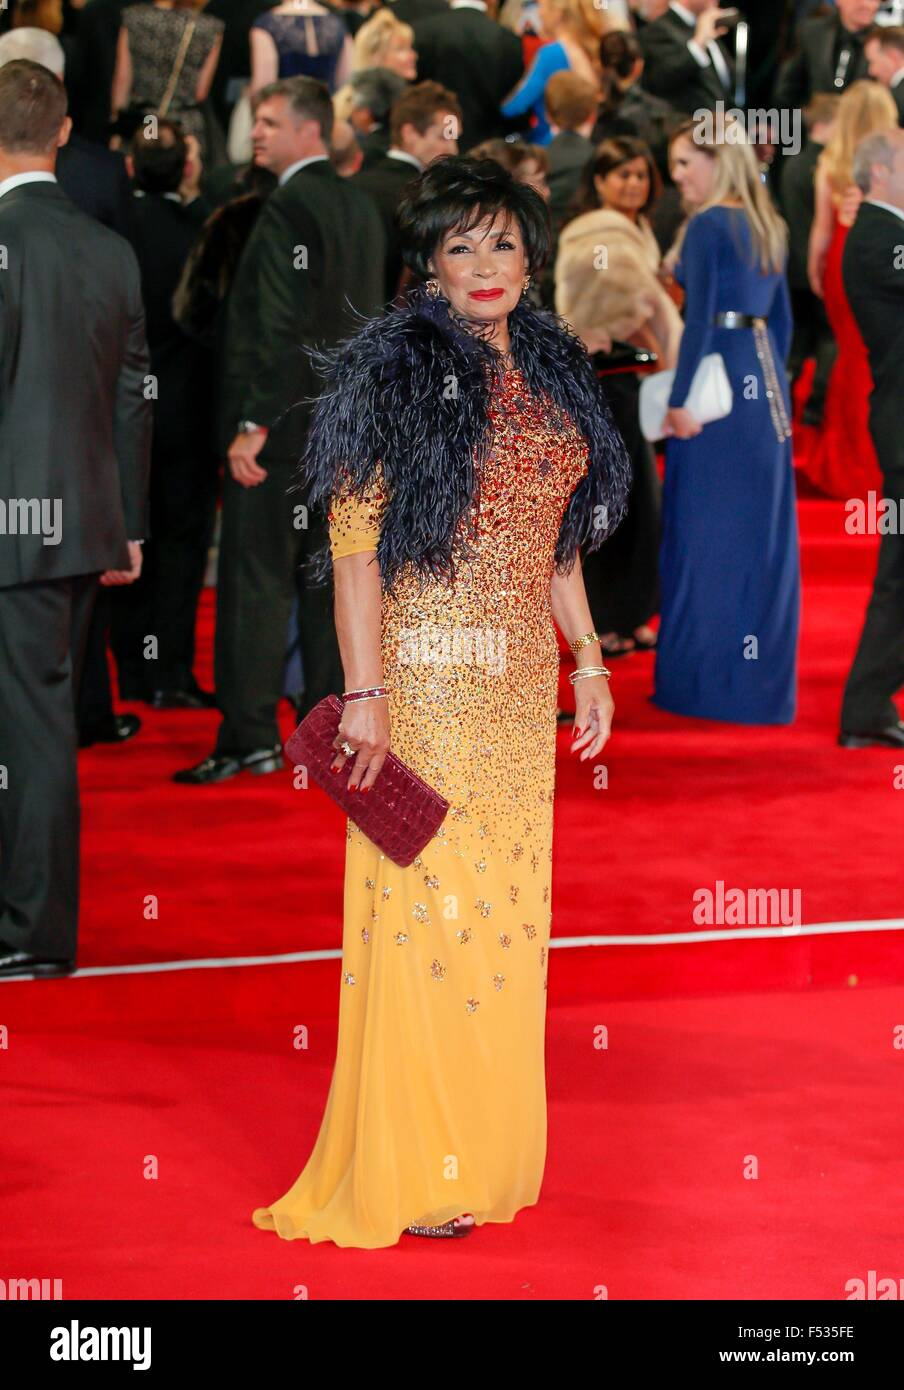 London, Britain. 26th Oct, 2015. British singer Shirley Bassey attends the world premiere of the new James Bond - Stock Image